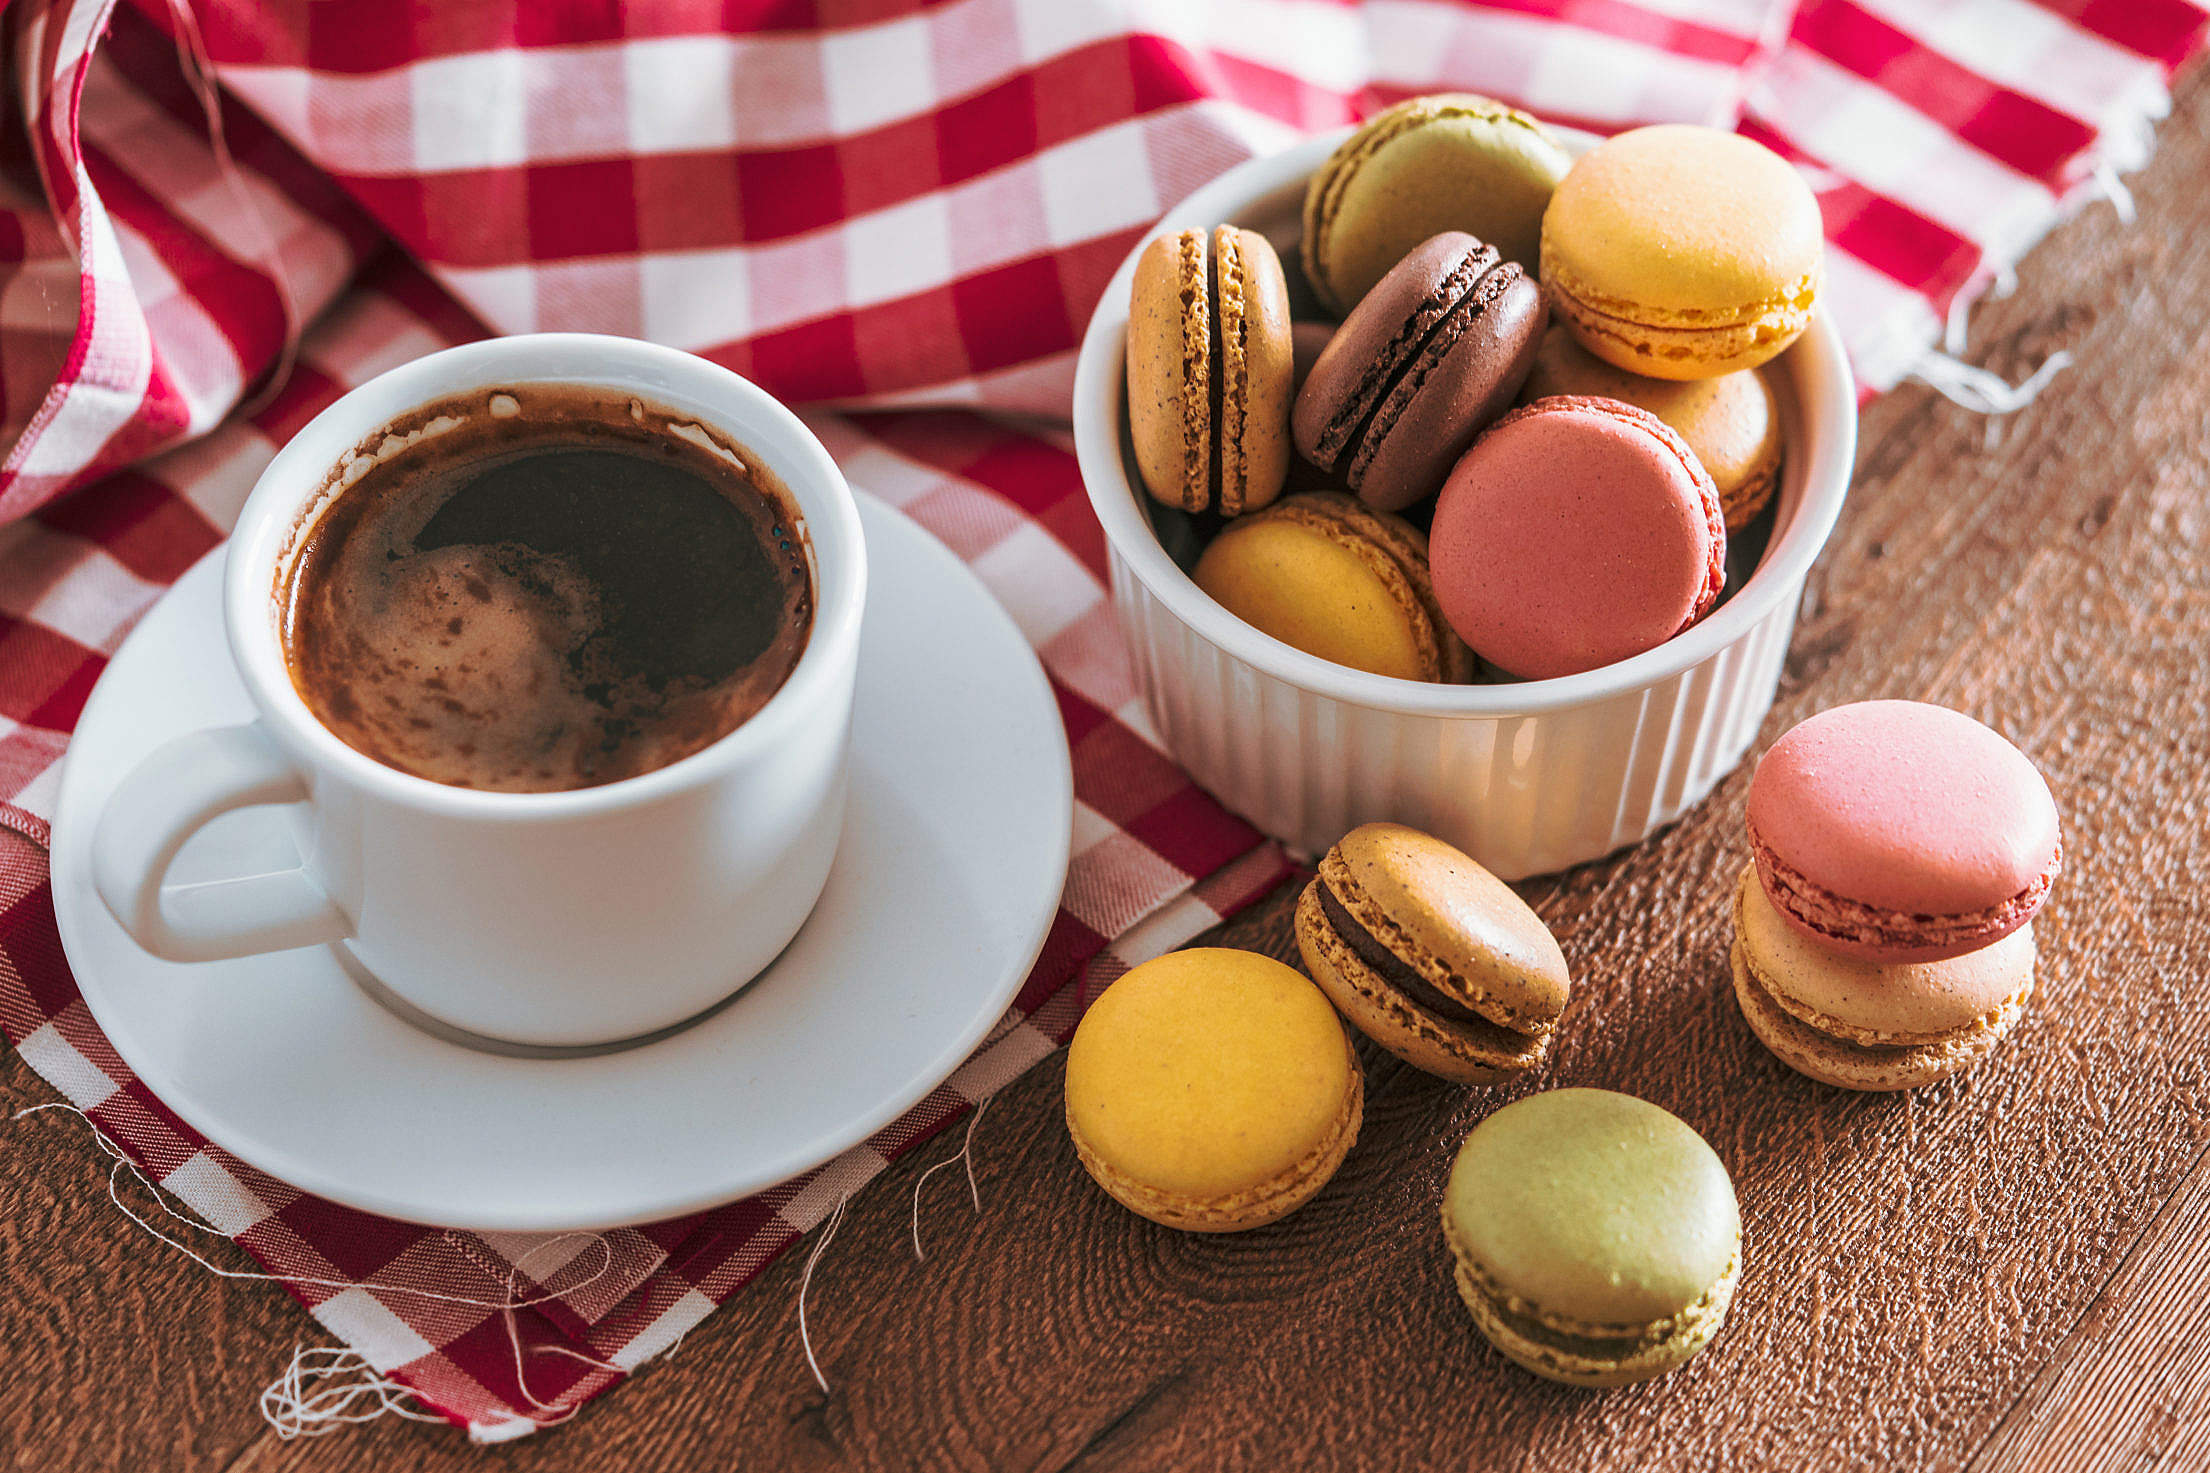 Colourful French Macarons with a Cup of Coffee on a Checked Cloth Free Stock Photo